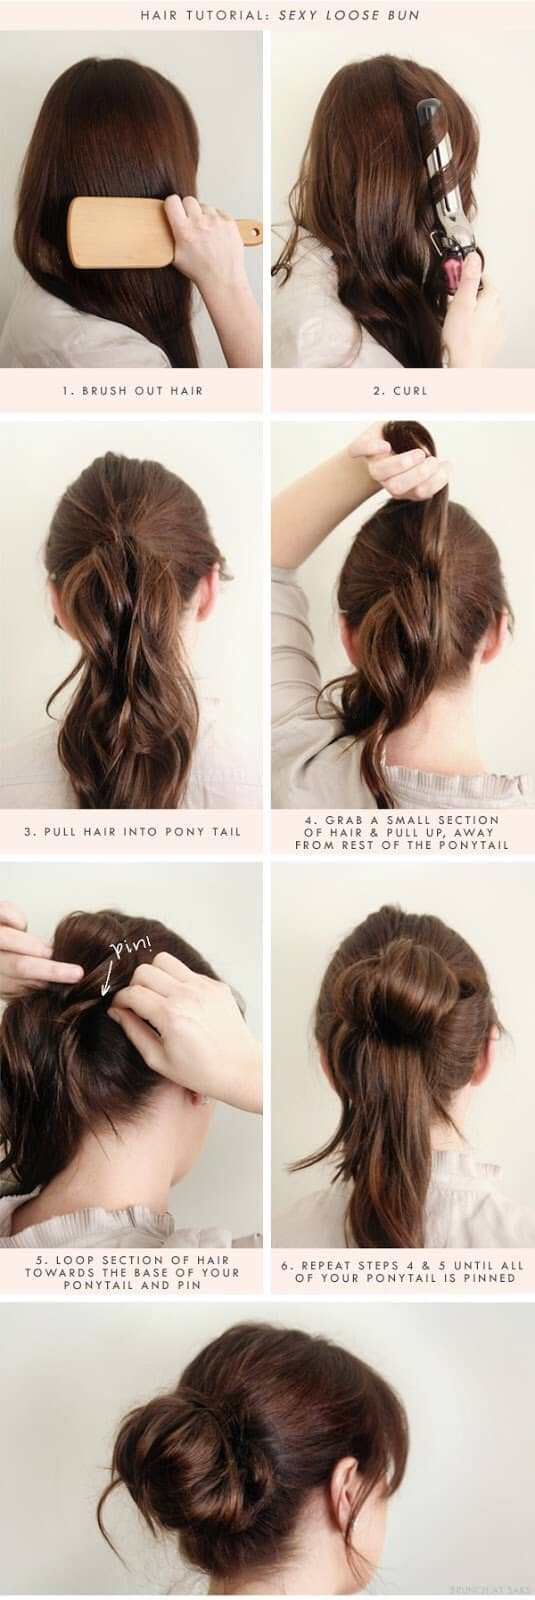 Best Adorable Bun Hairstyles 2019-Inspirations That 4